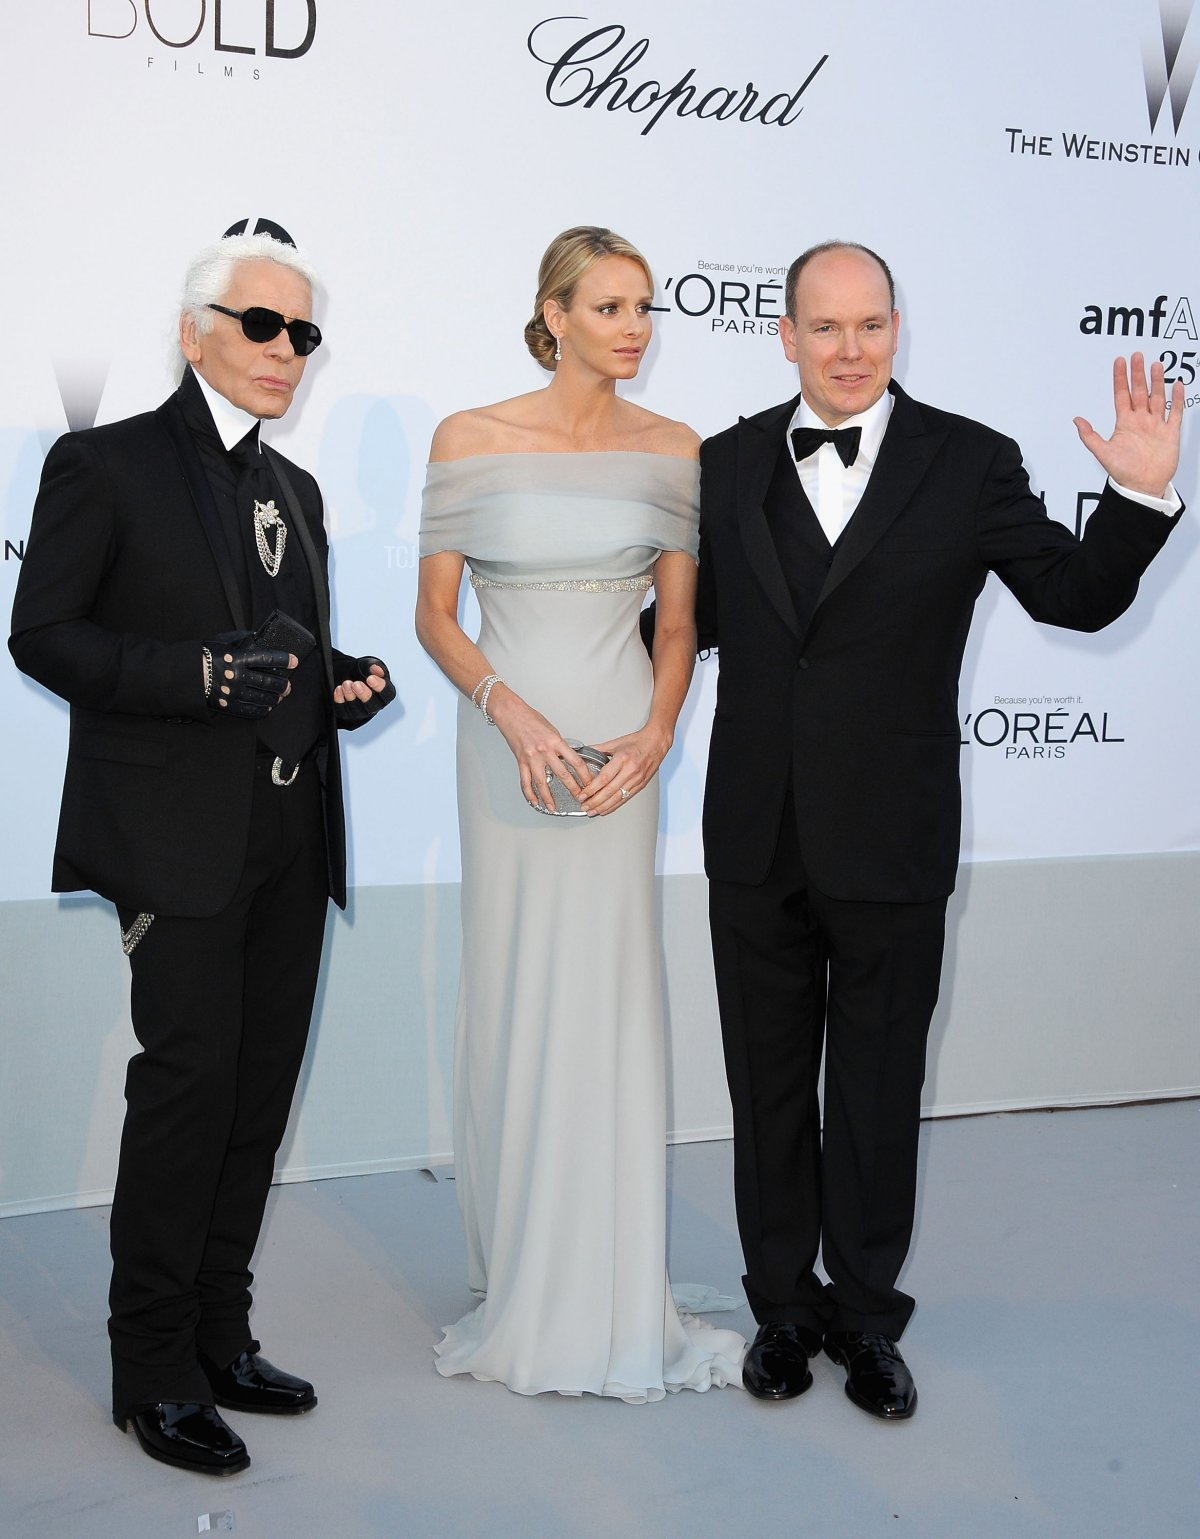 Karl Lagerfeld, Charlene Wittstock and Prince Albert II of Monaco attend amfAR's Cinema Against AIDS Gala during the 64th Annual Cannes Film Festival at Hotel Du Cap on May 19, 2011 in Antibes